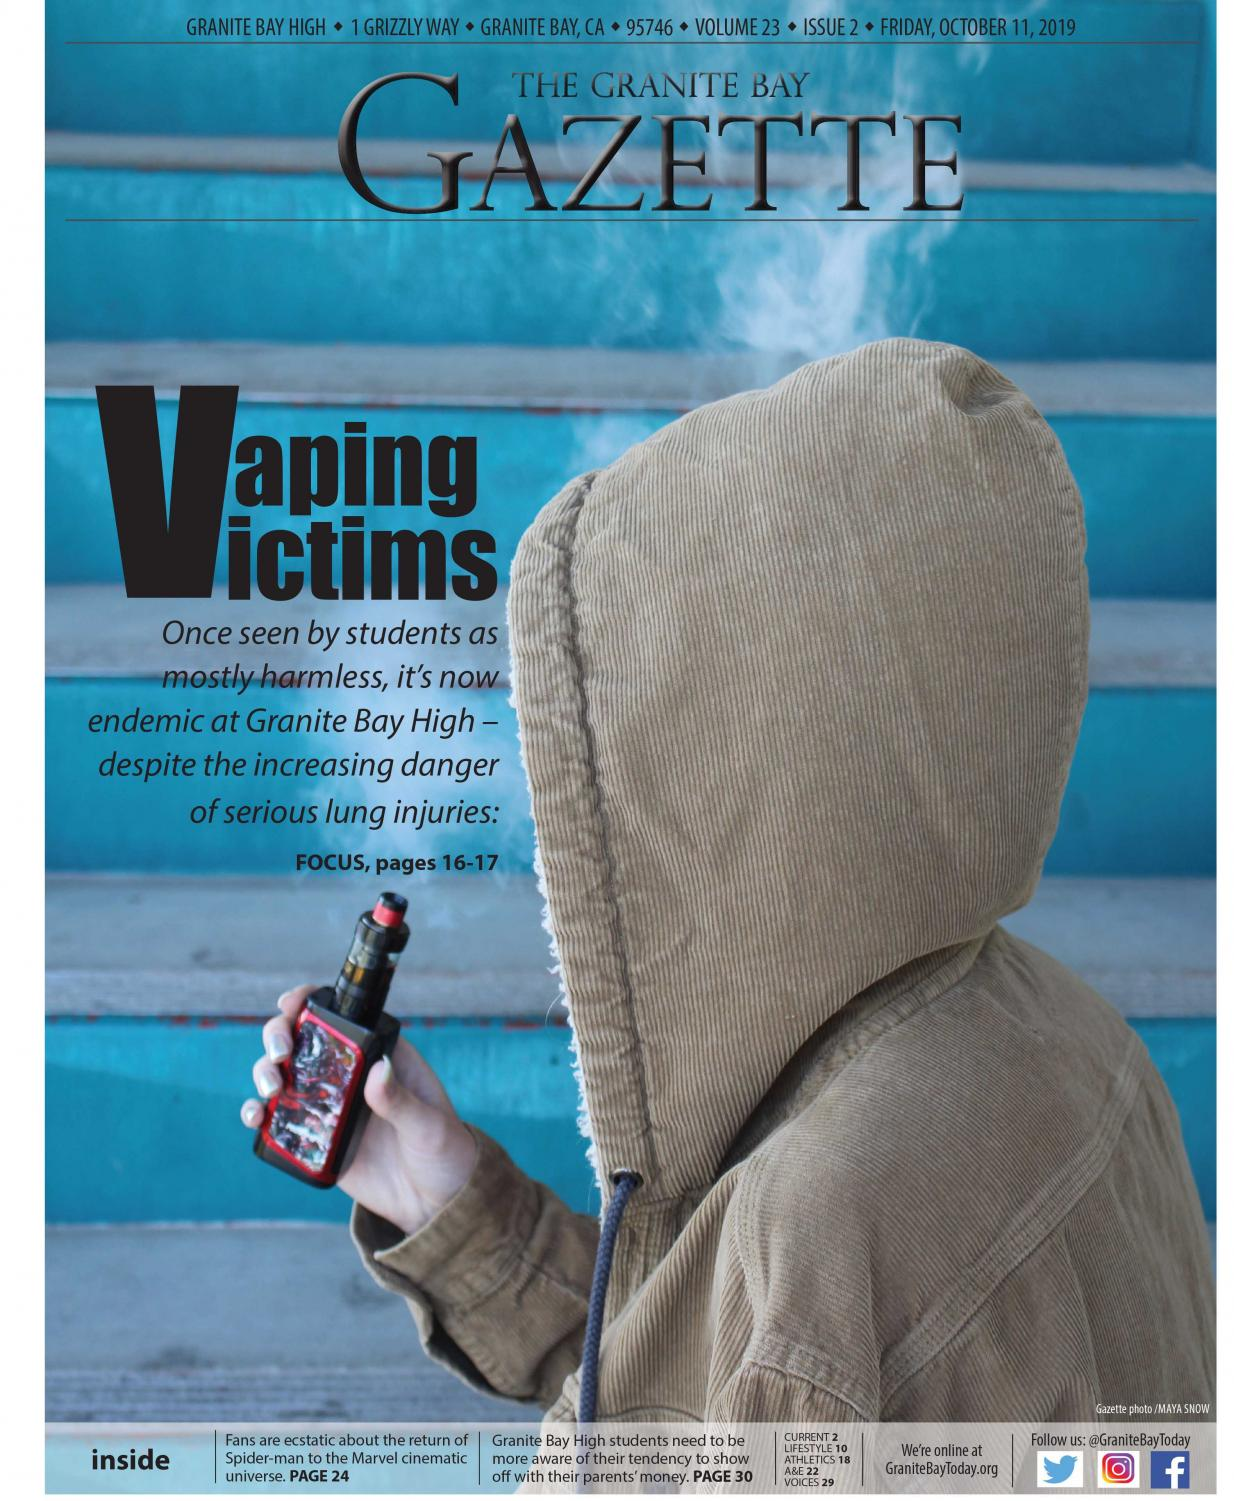 Granite Bay Gazette, Vol. 23, Issue 2, October 2019